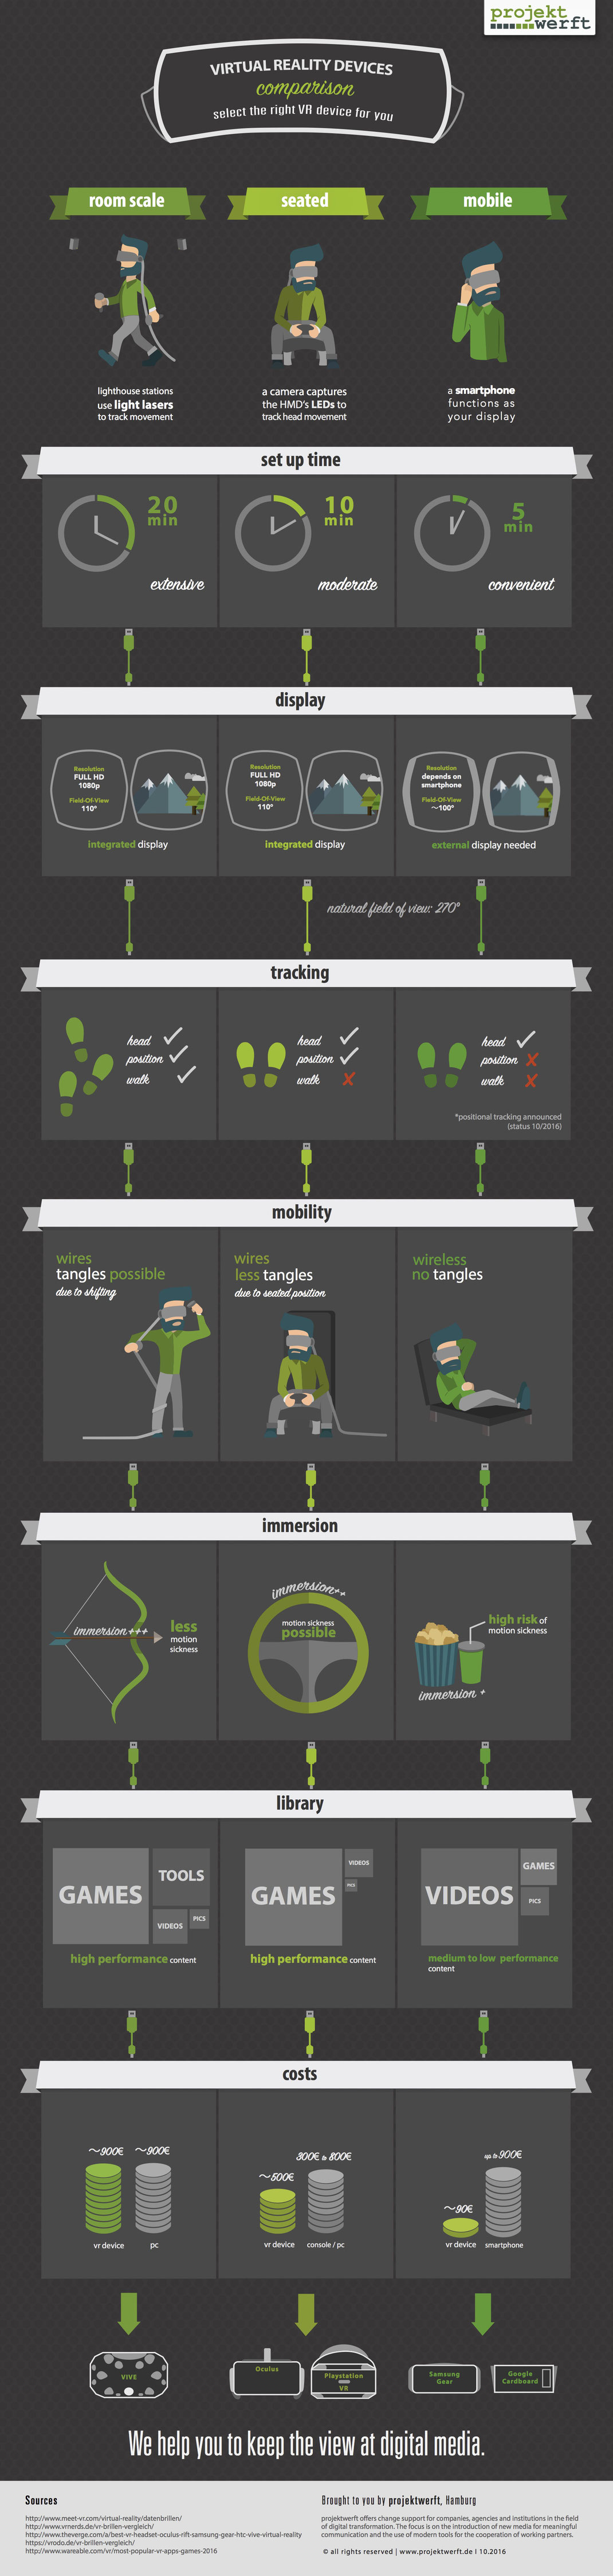 Virtual Reality Devices Comparison 2016 (Infographic) by projektwerft, Hamburg